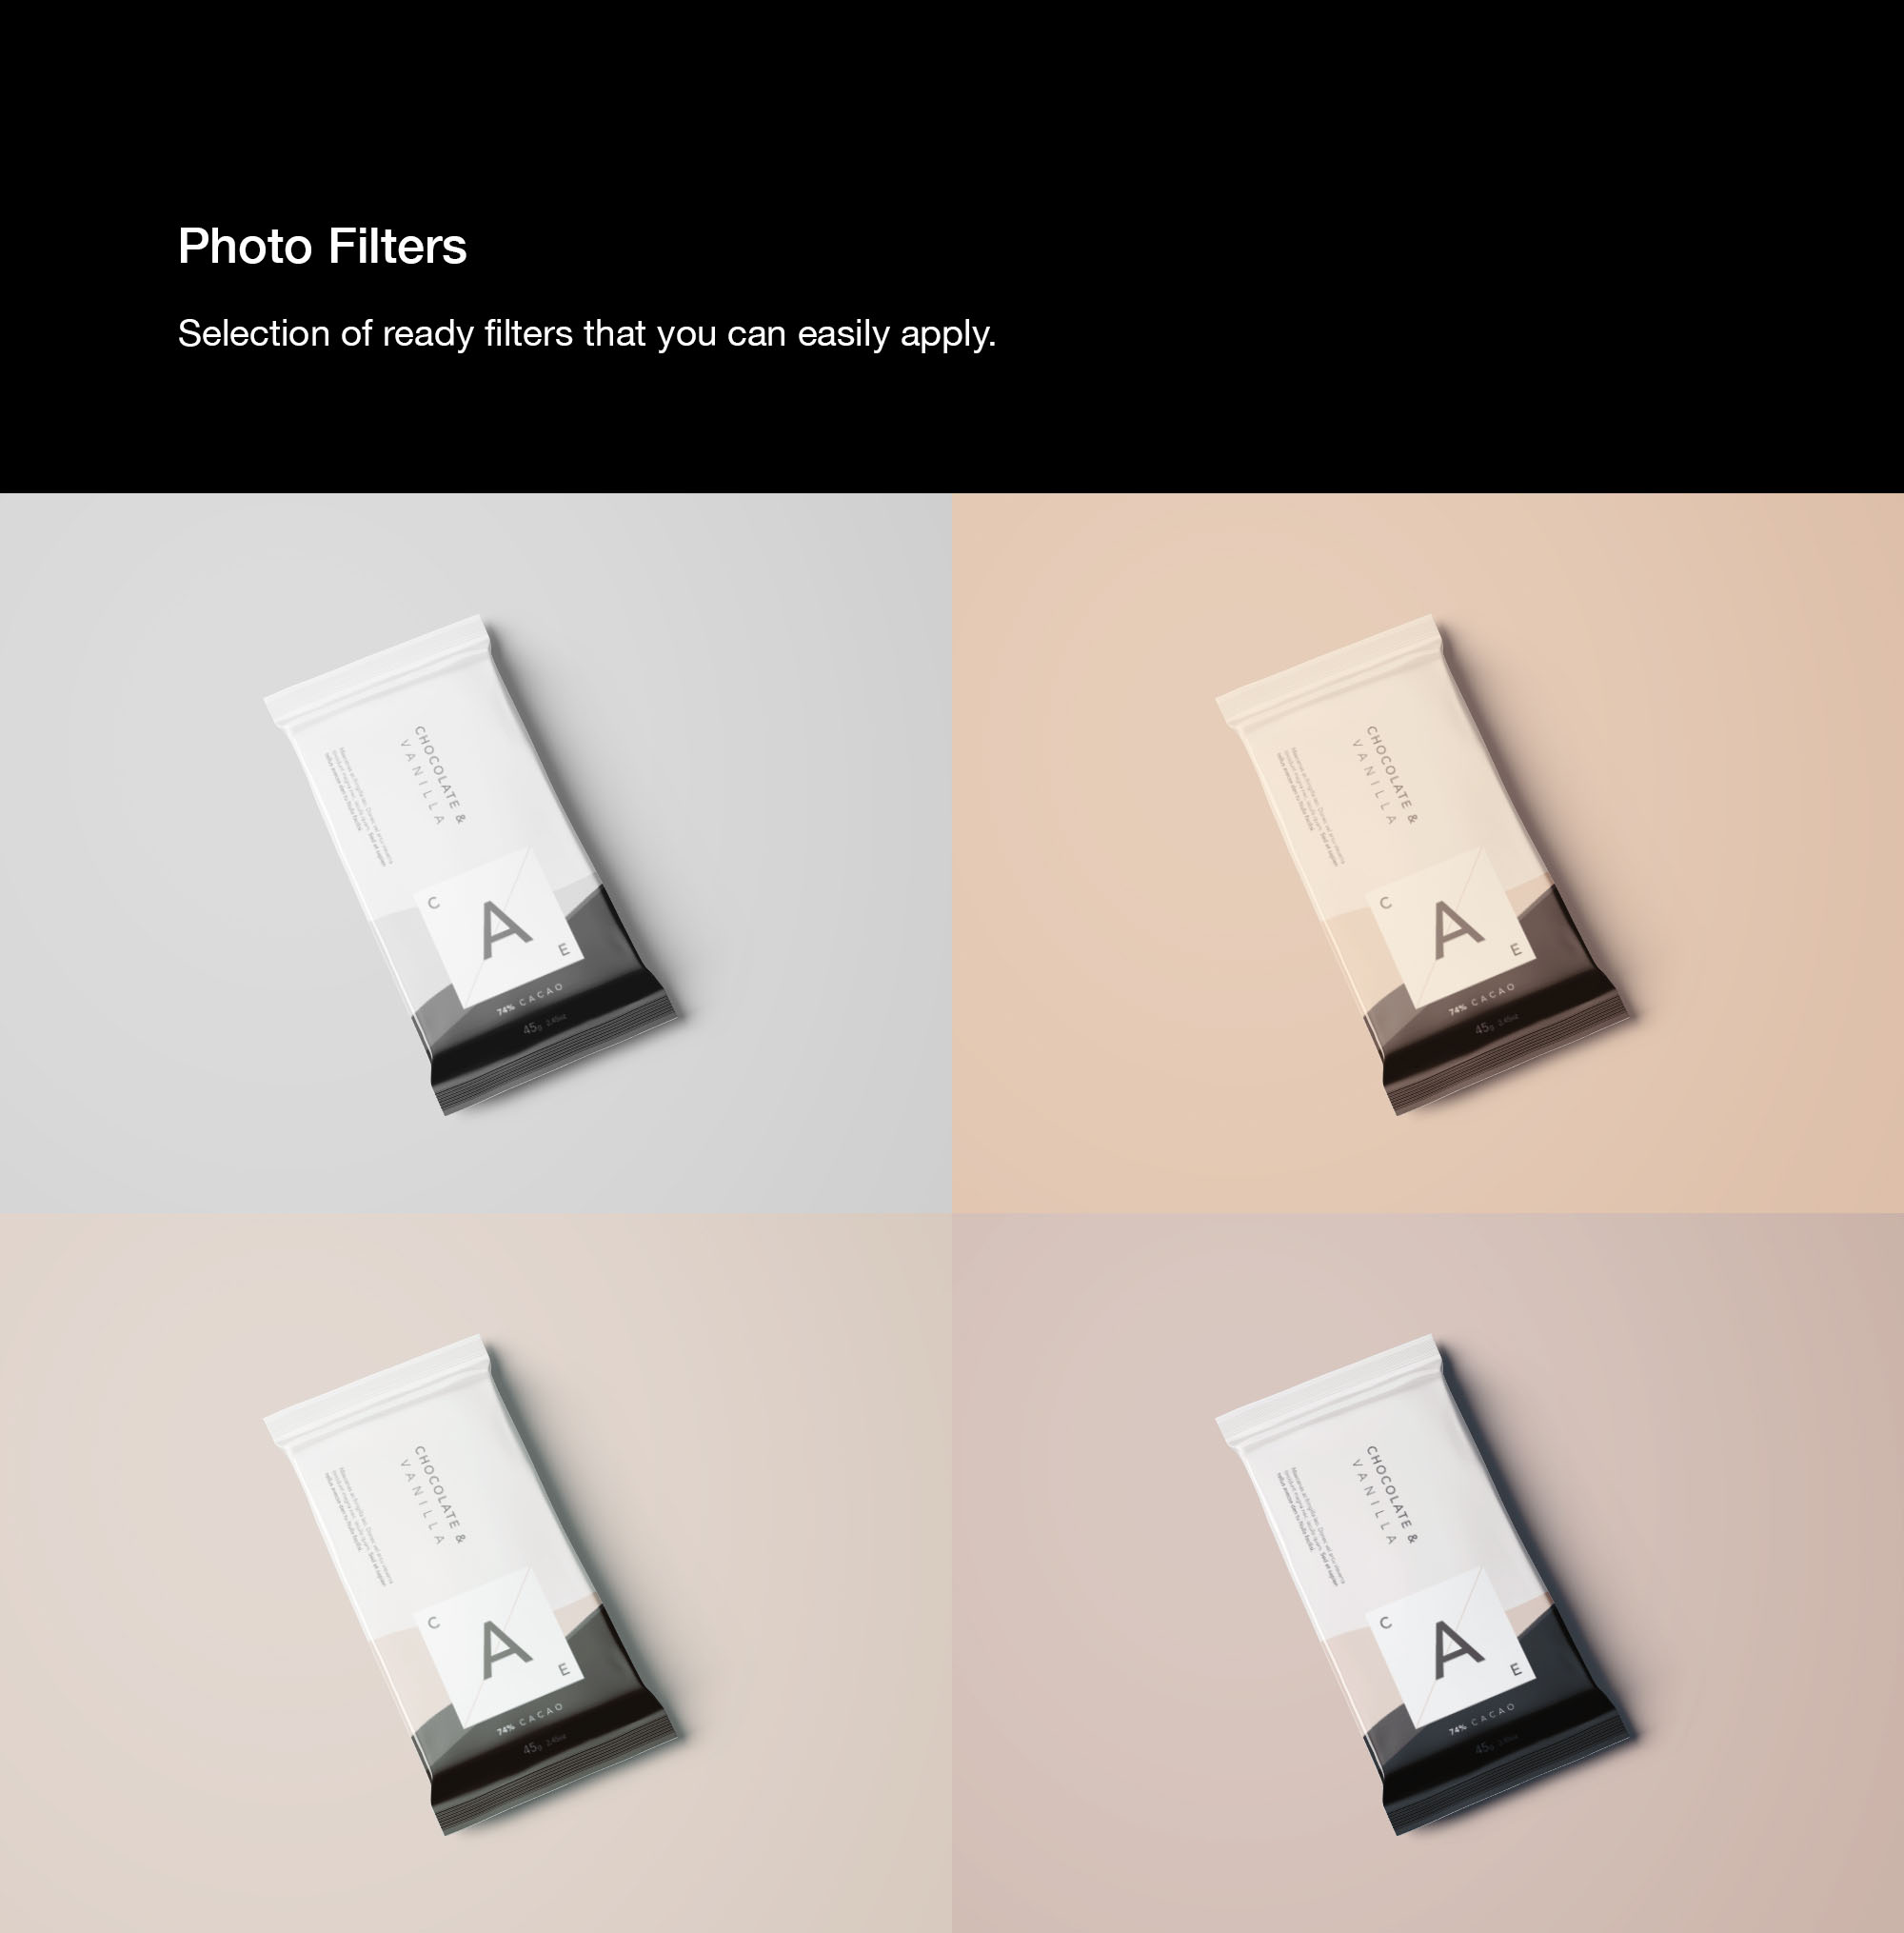 Chocolate Bar Mockup Photo Filters